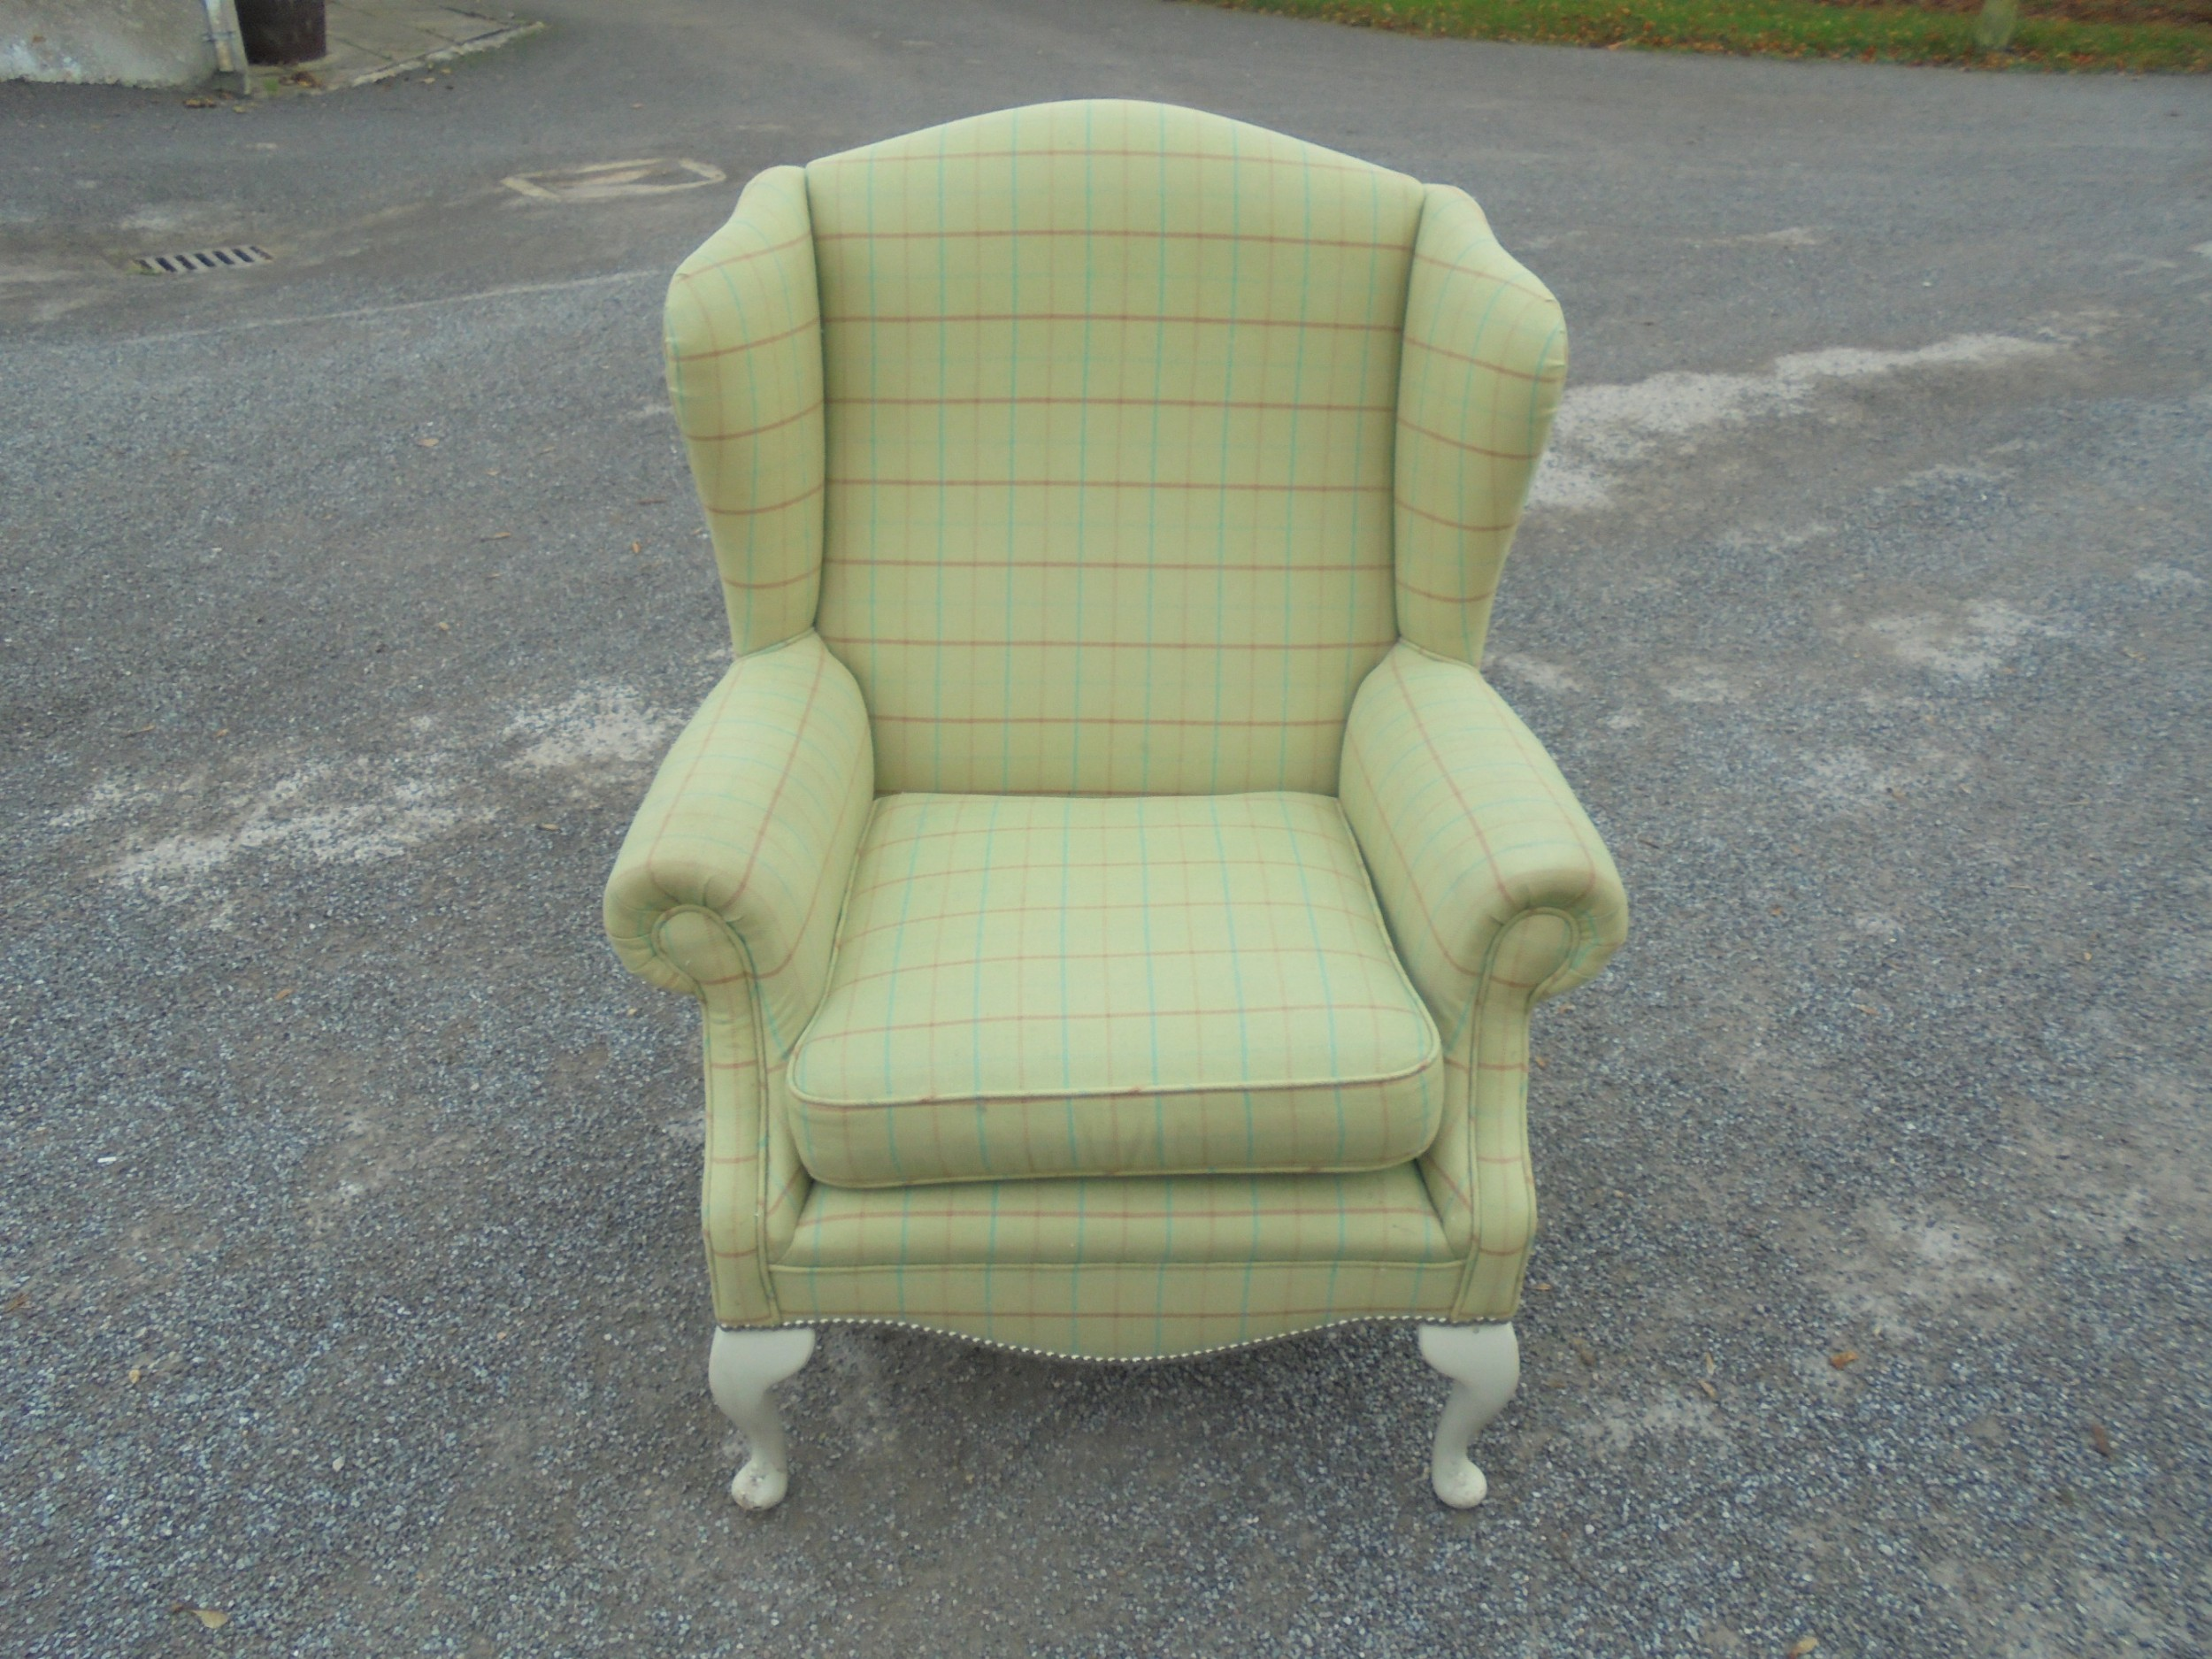 Upholstered Winged Armchair | 585353 | Sellingantiques.co.uk